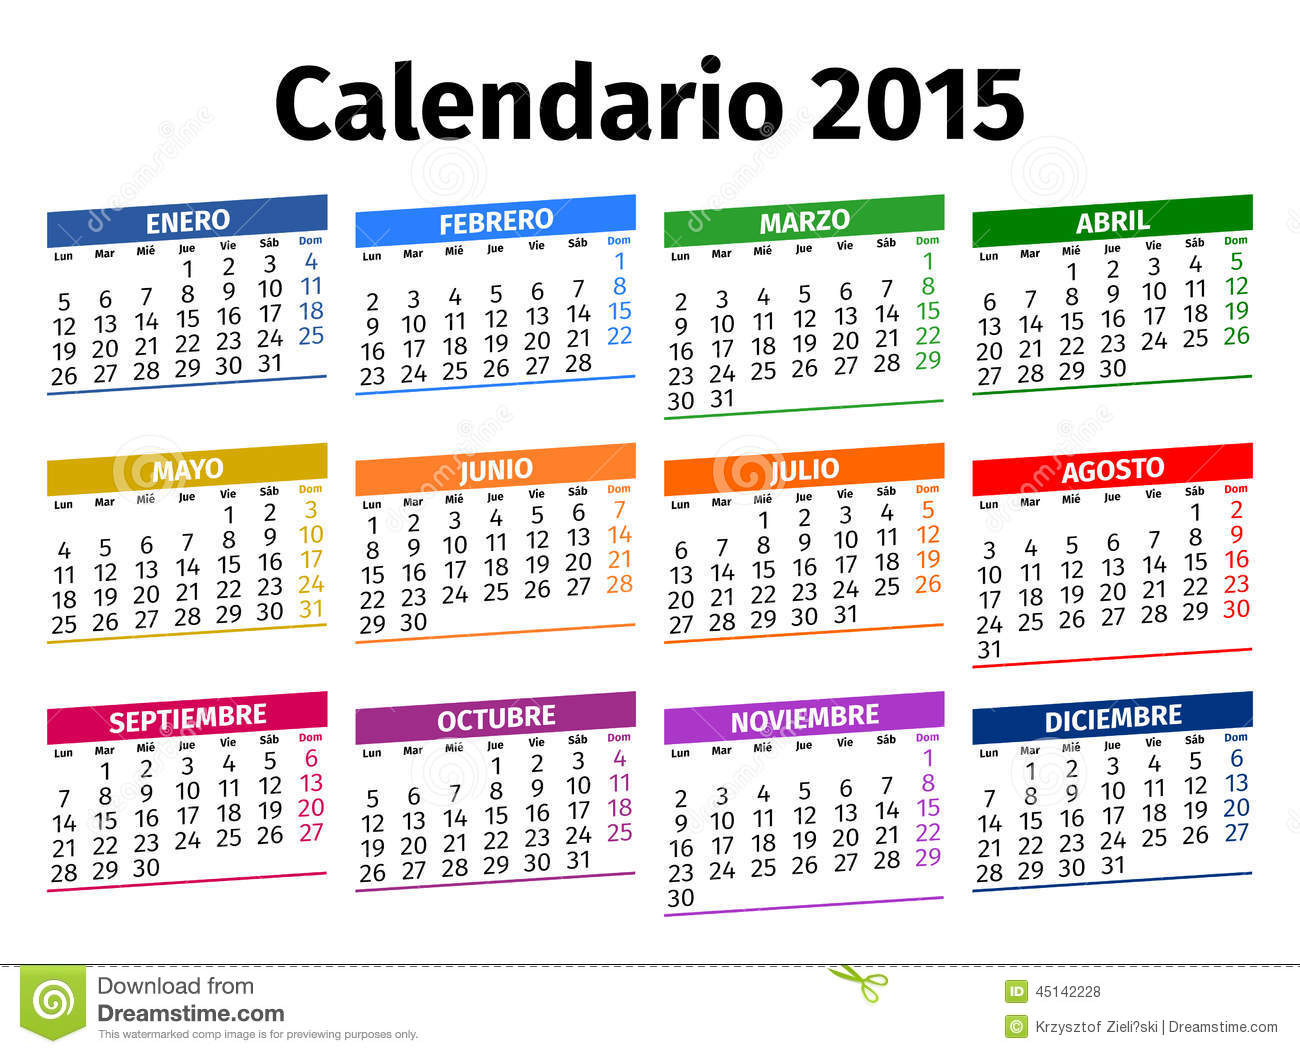 Spanish Calendar 2015 Stock Photo - Image: 45142228